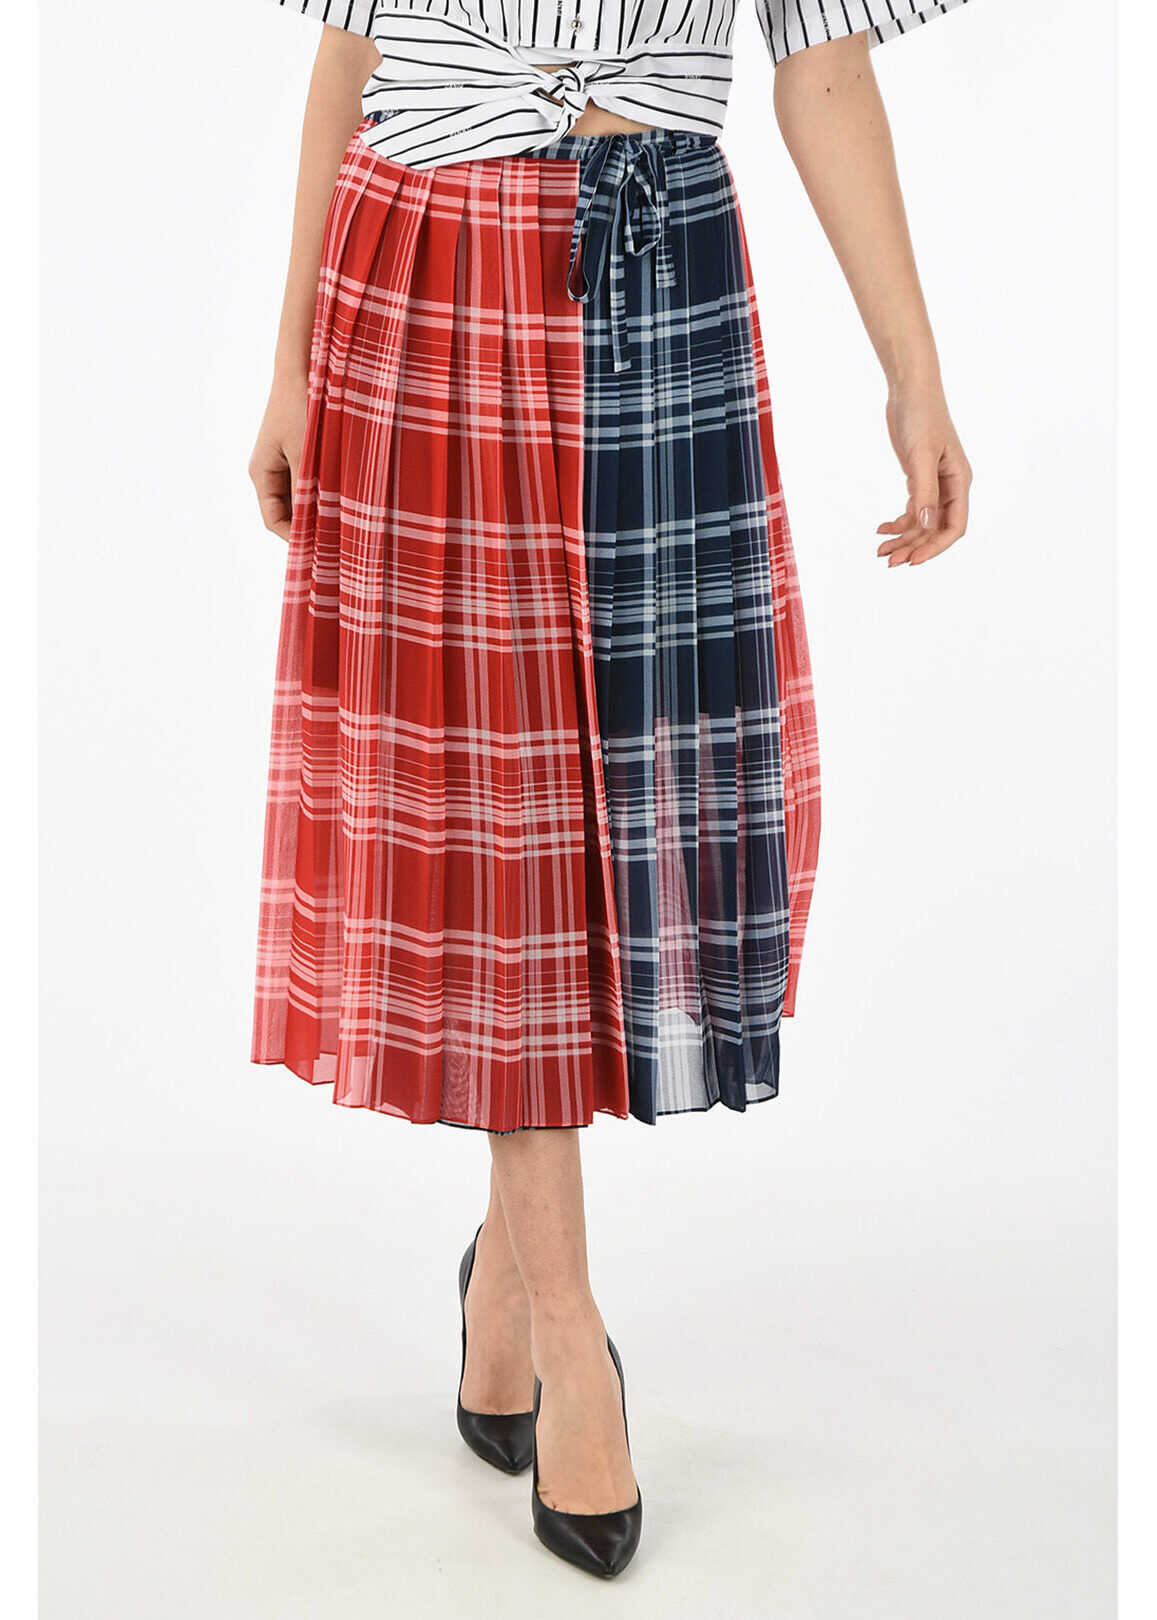 Tommy Hilfiger COLLECTION checked wrap madras skirt MULTICOLOR